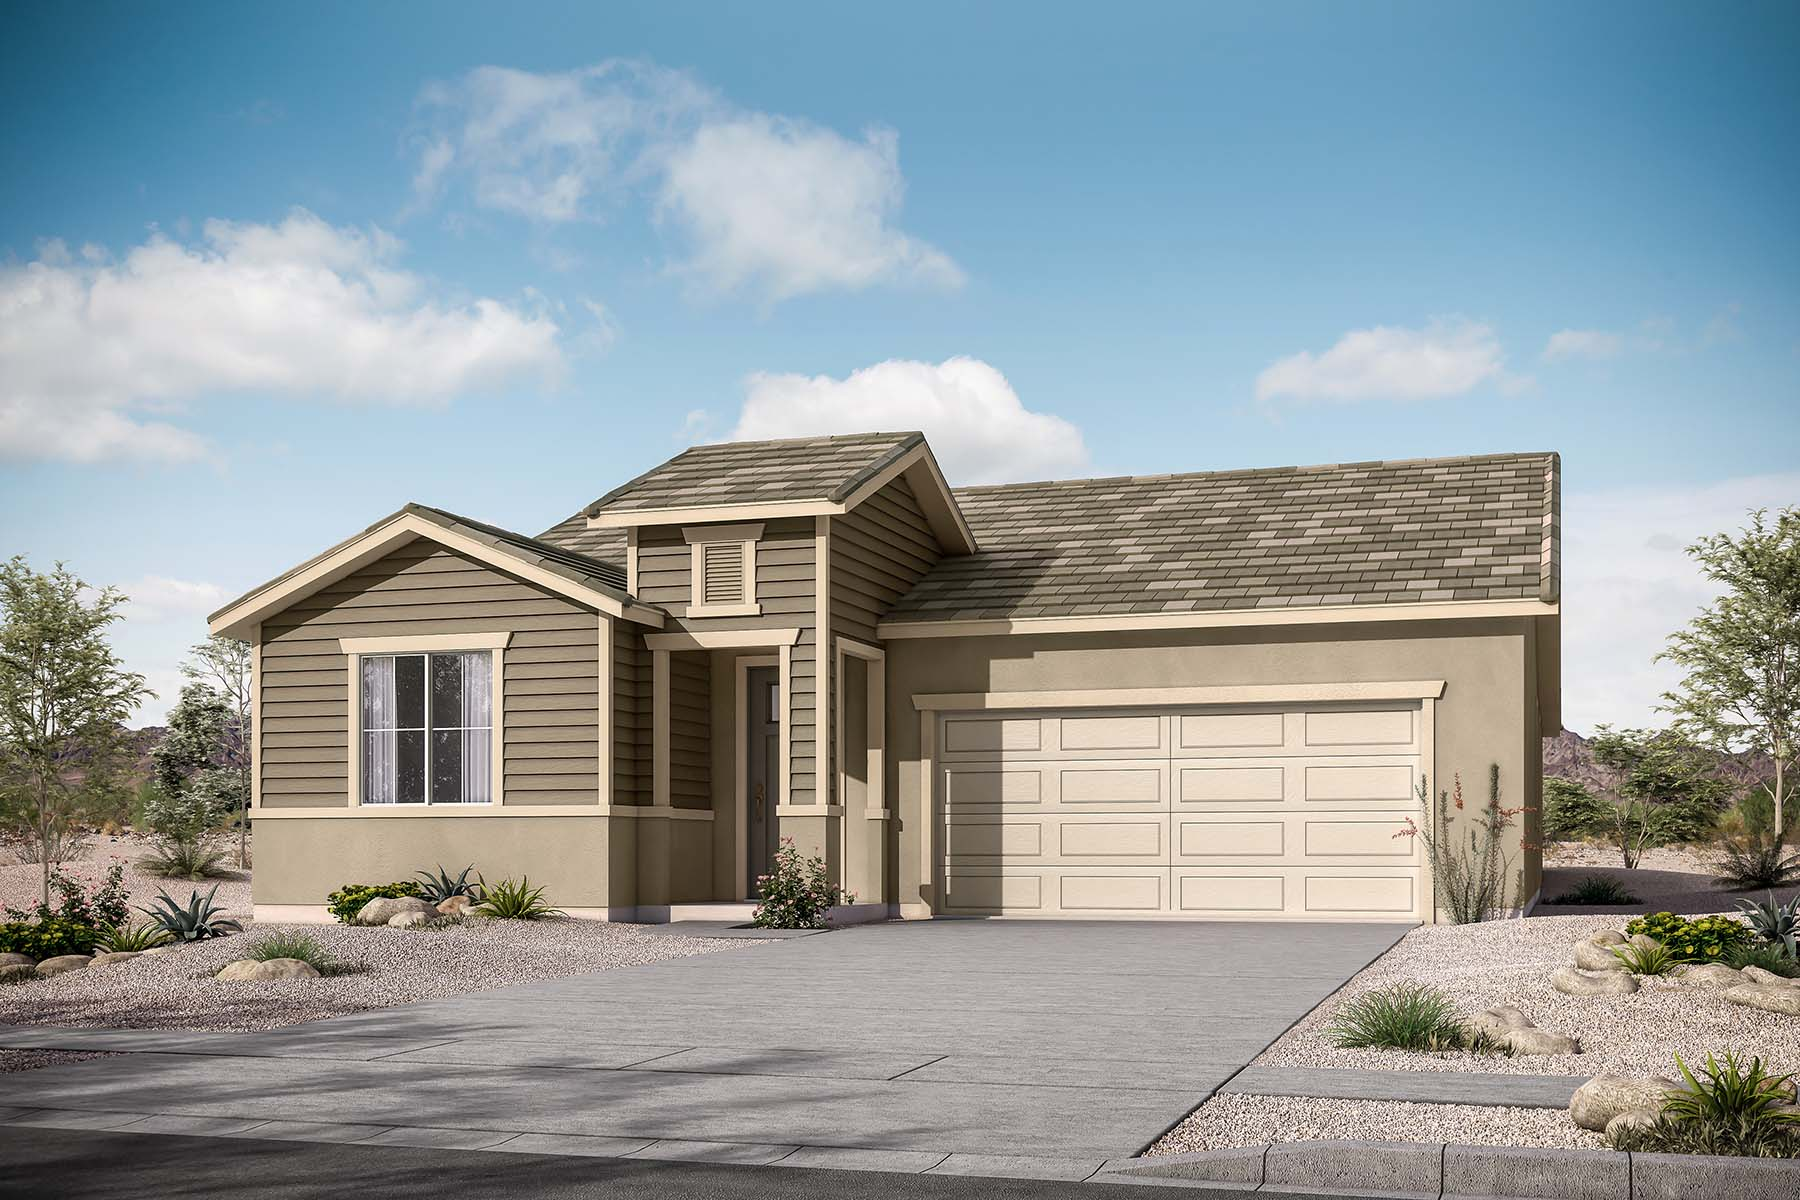 Riverton Plan  at Roosevelt Park in Avondale Arizona by Mattamy Homes